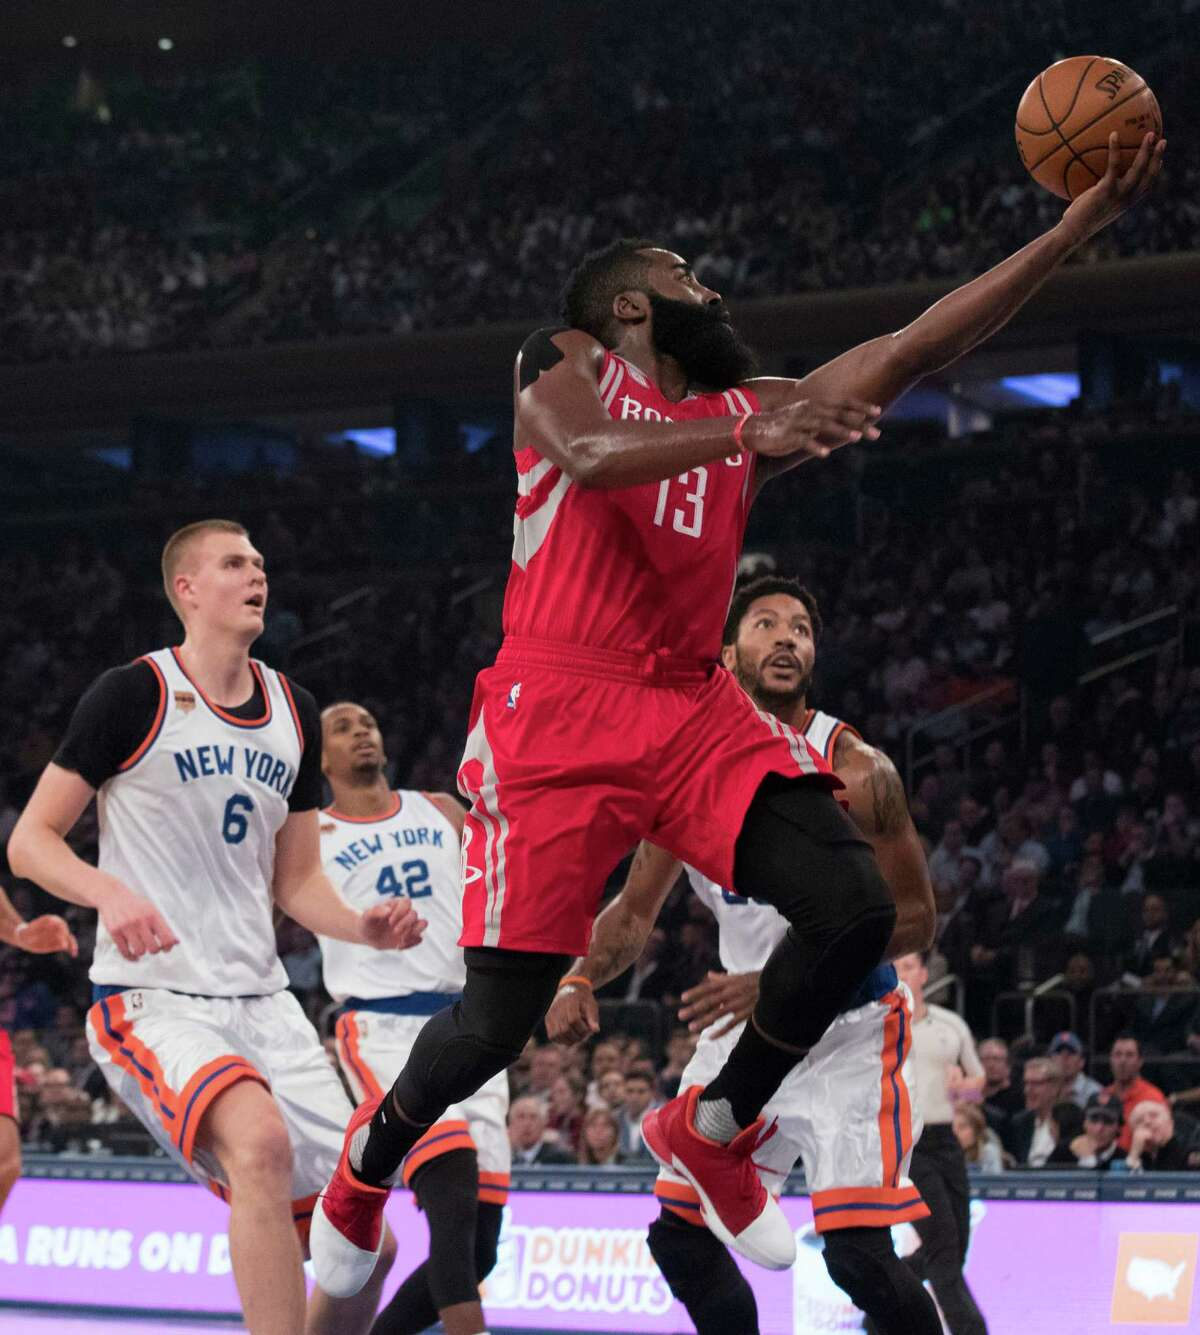 Rockets guard James Harden scored 30 points and had 15 assists Wednesday night.